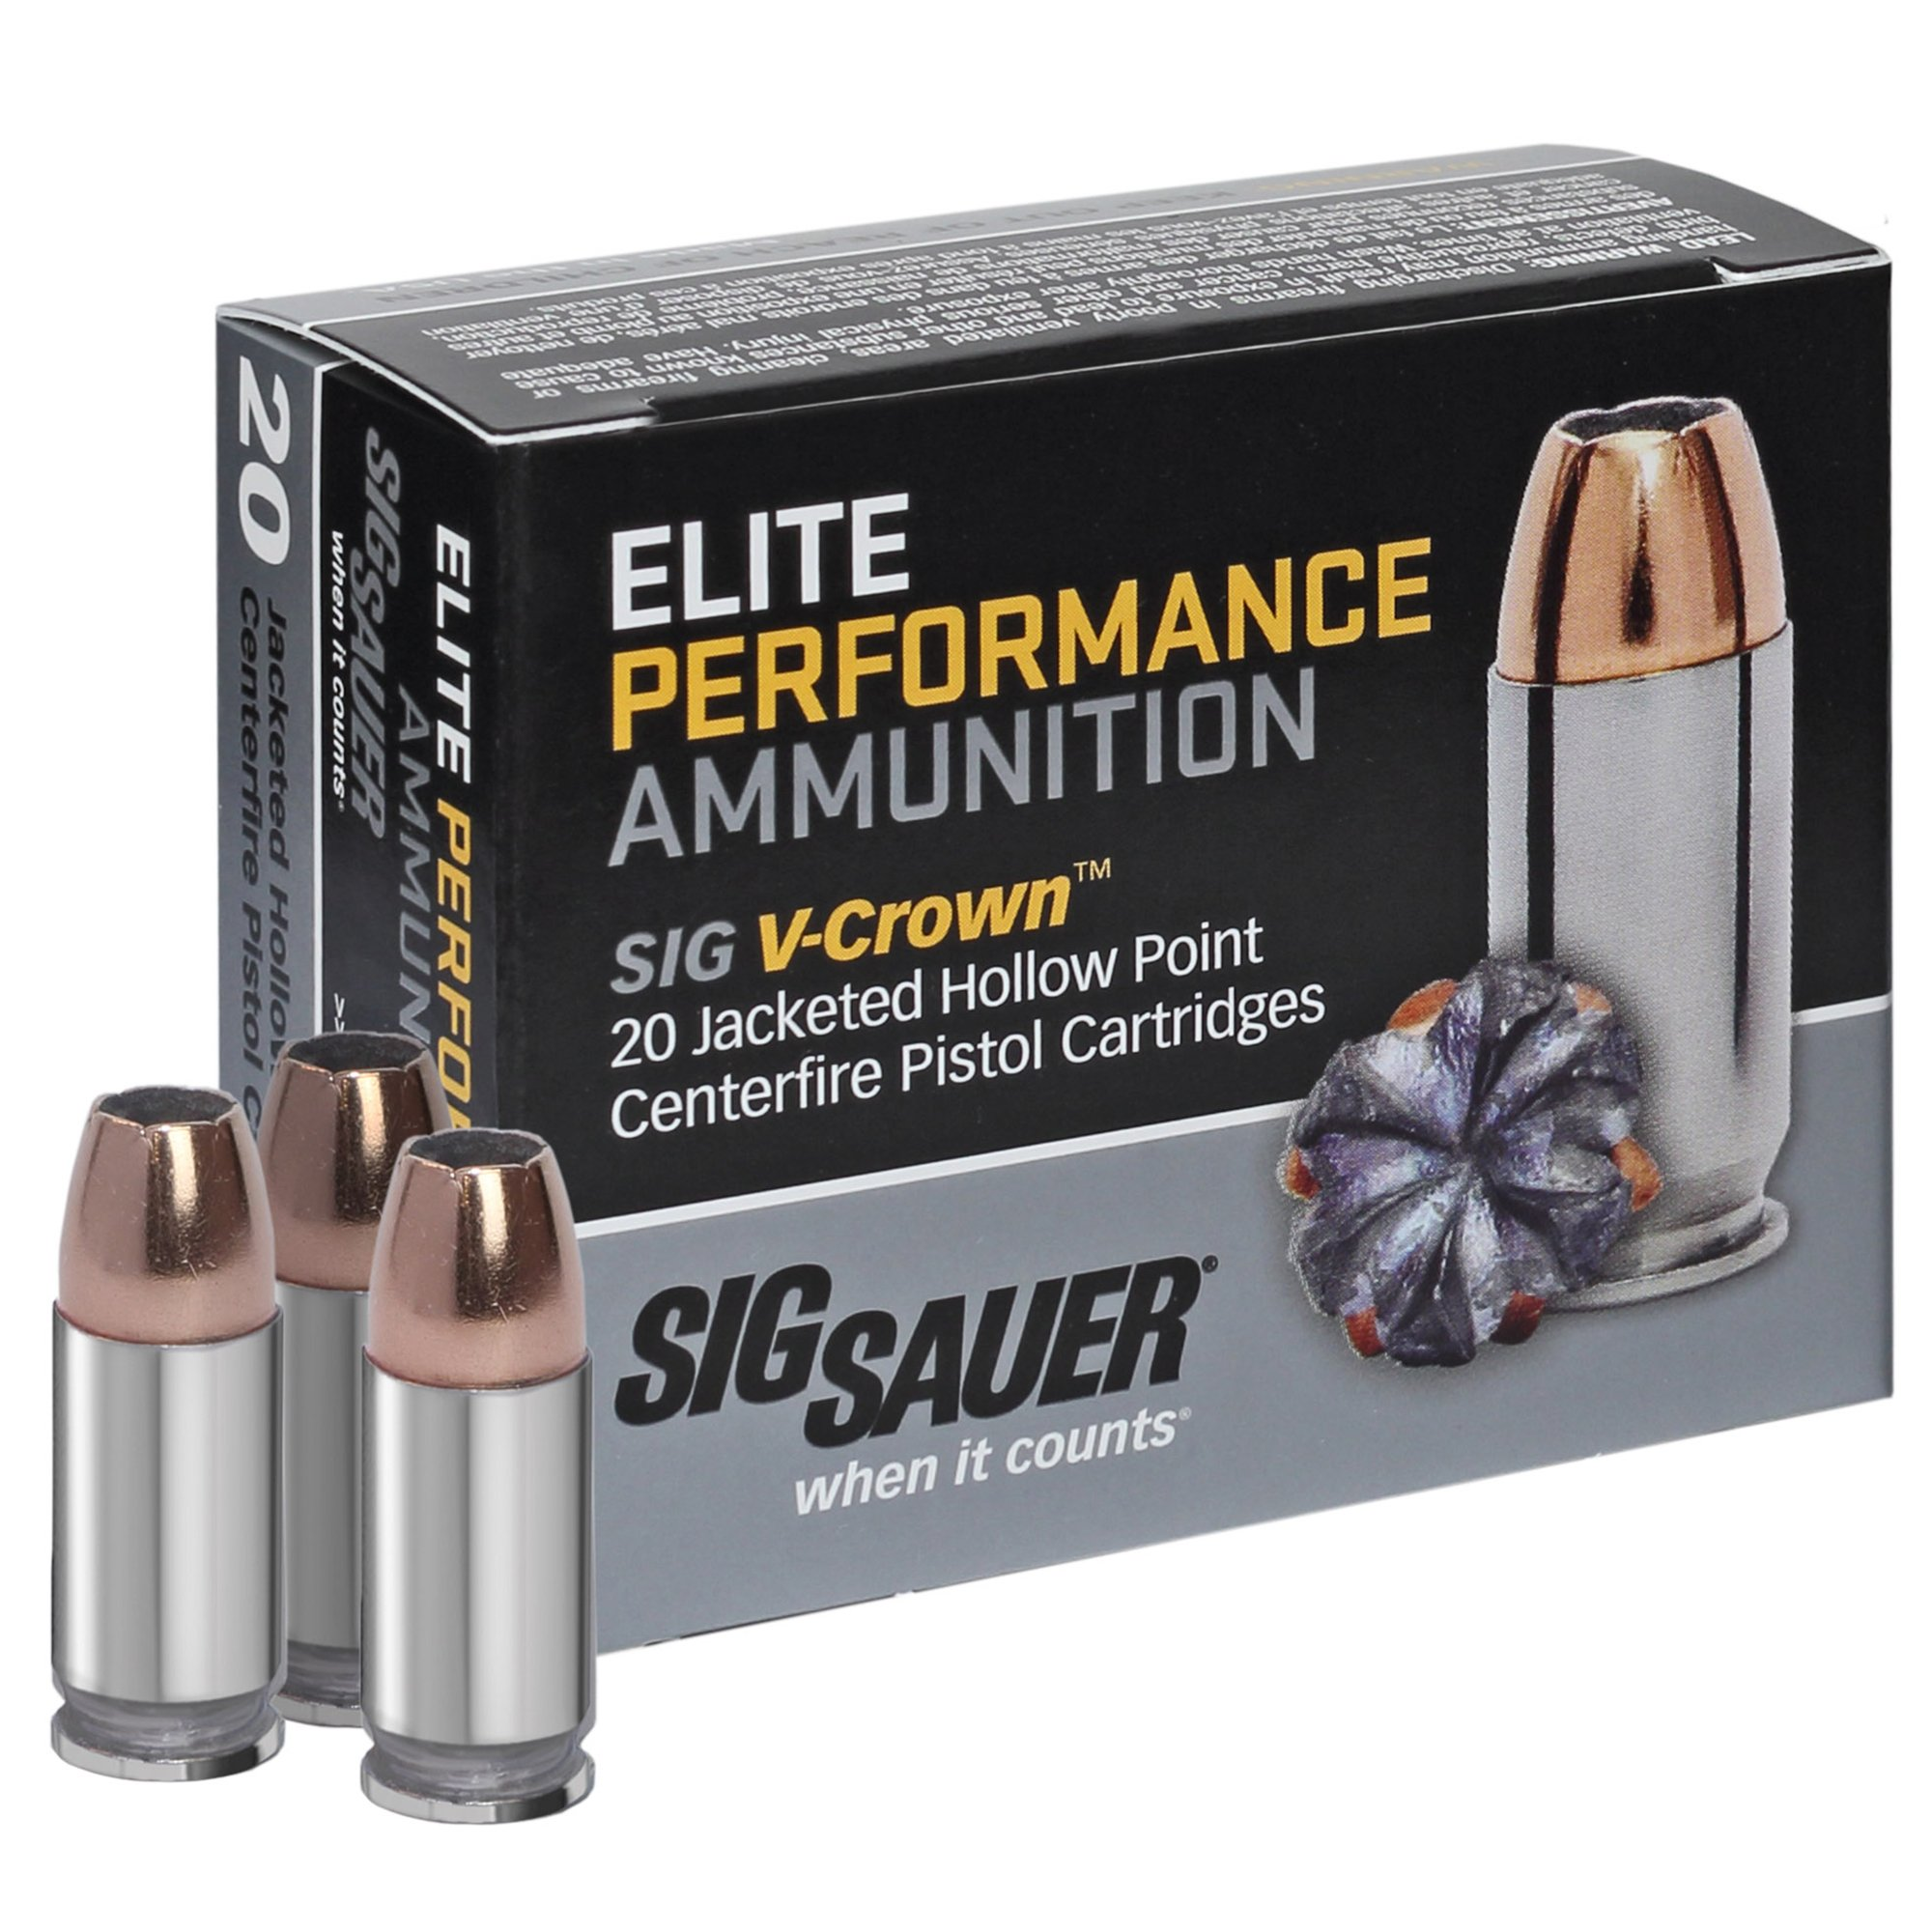 SIG Sauer Elite Performance V-Crown Ammo, 9mm Luger, 115-gr, JHP thumbnail